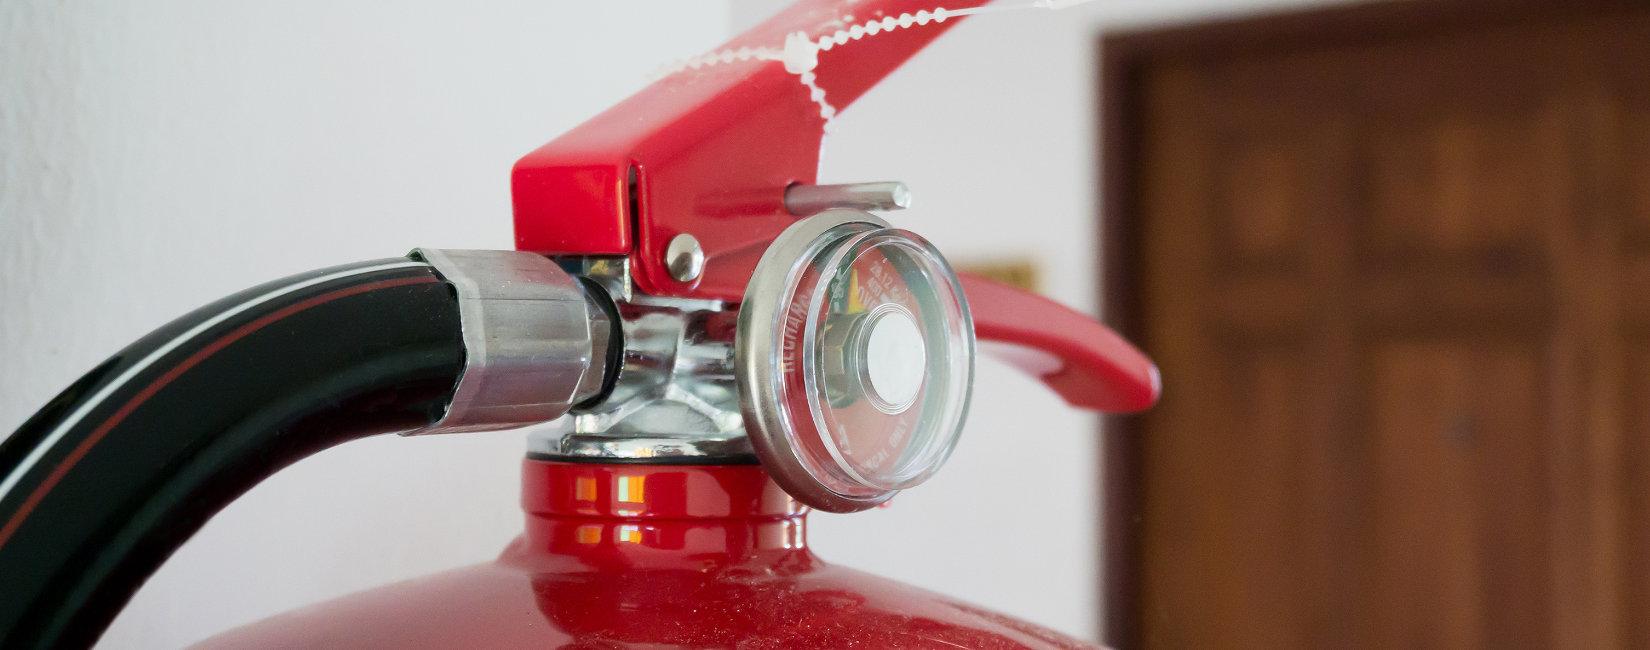 Fire extinguisher training course online